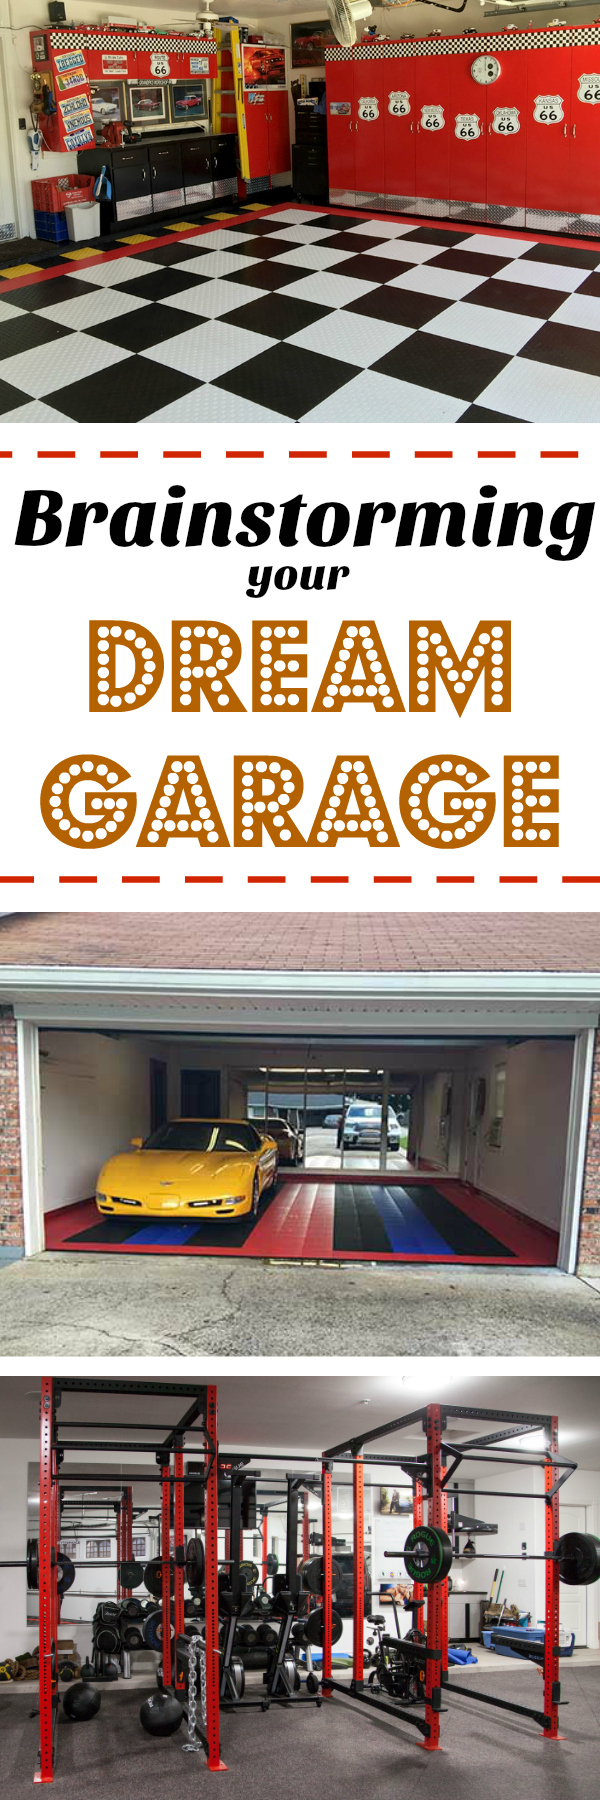 Brainstorming Your Dream Garage: How to take the first steps to building your dream garage - where to look and what to look for.